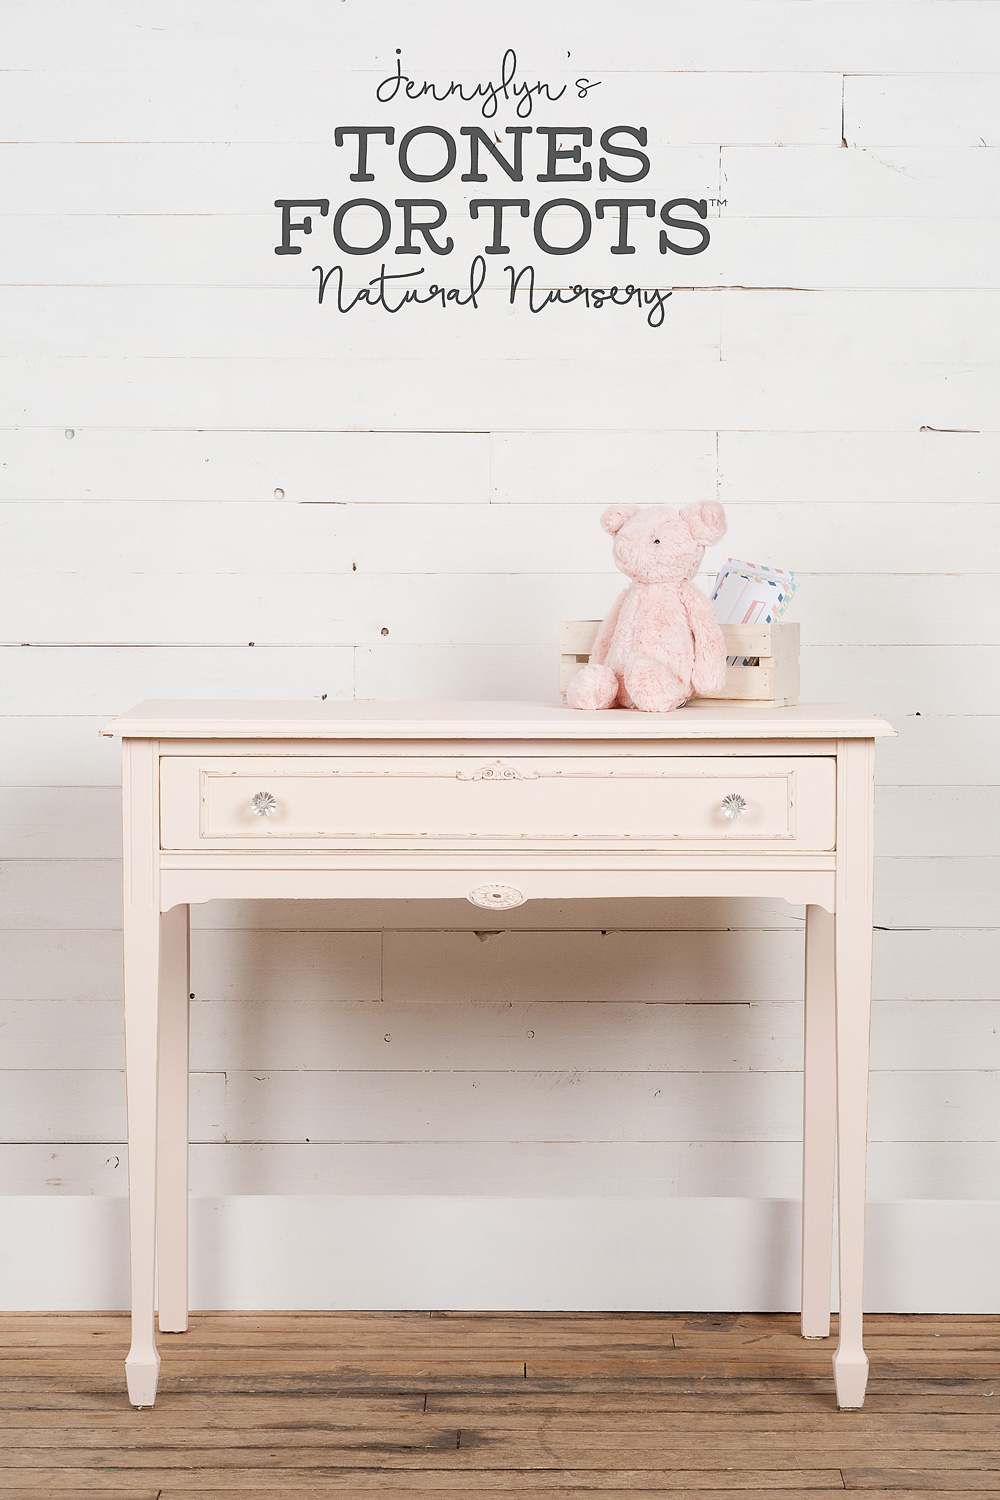 End table painted in Little Piggy from the Jennylyn's Tones for Totes Collection of Fusion Mineral Paint.